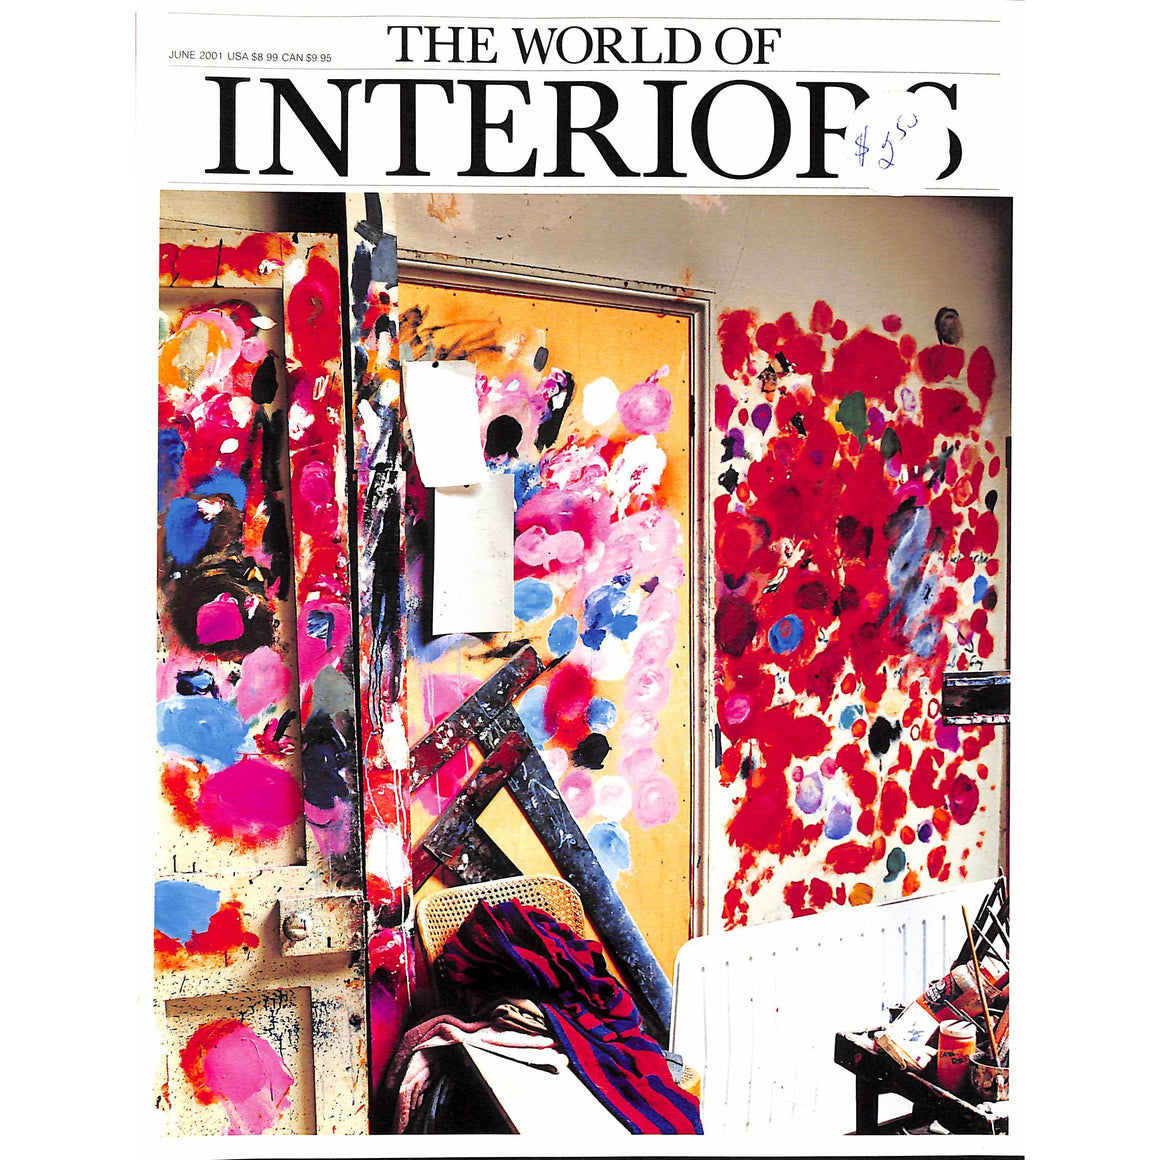 The World of Interiors June 2001